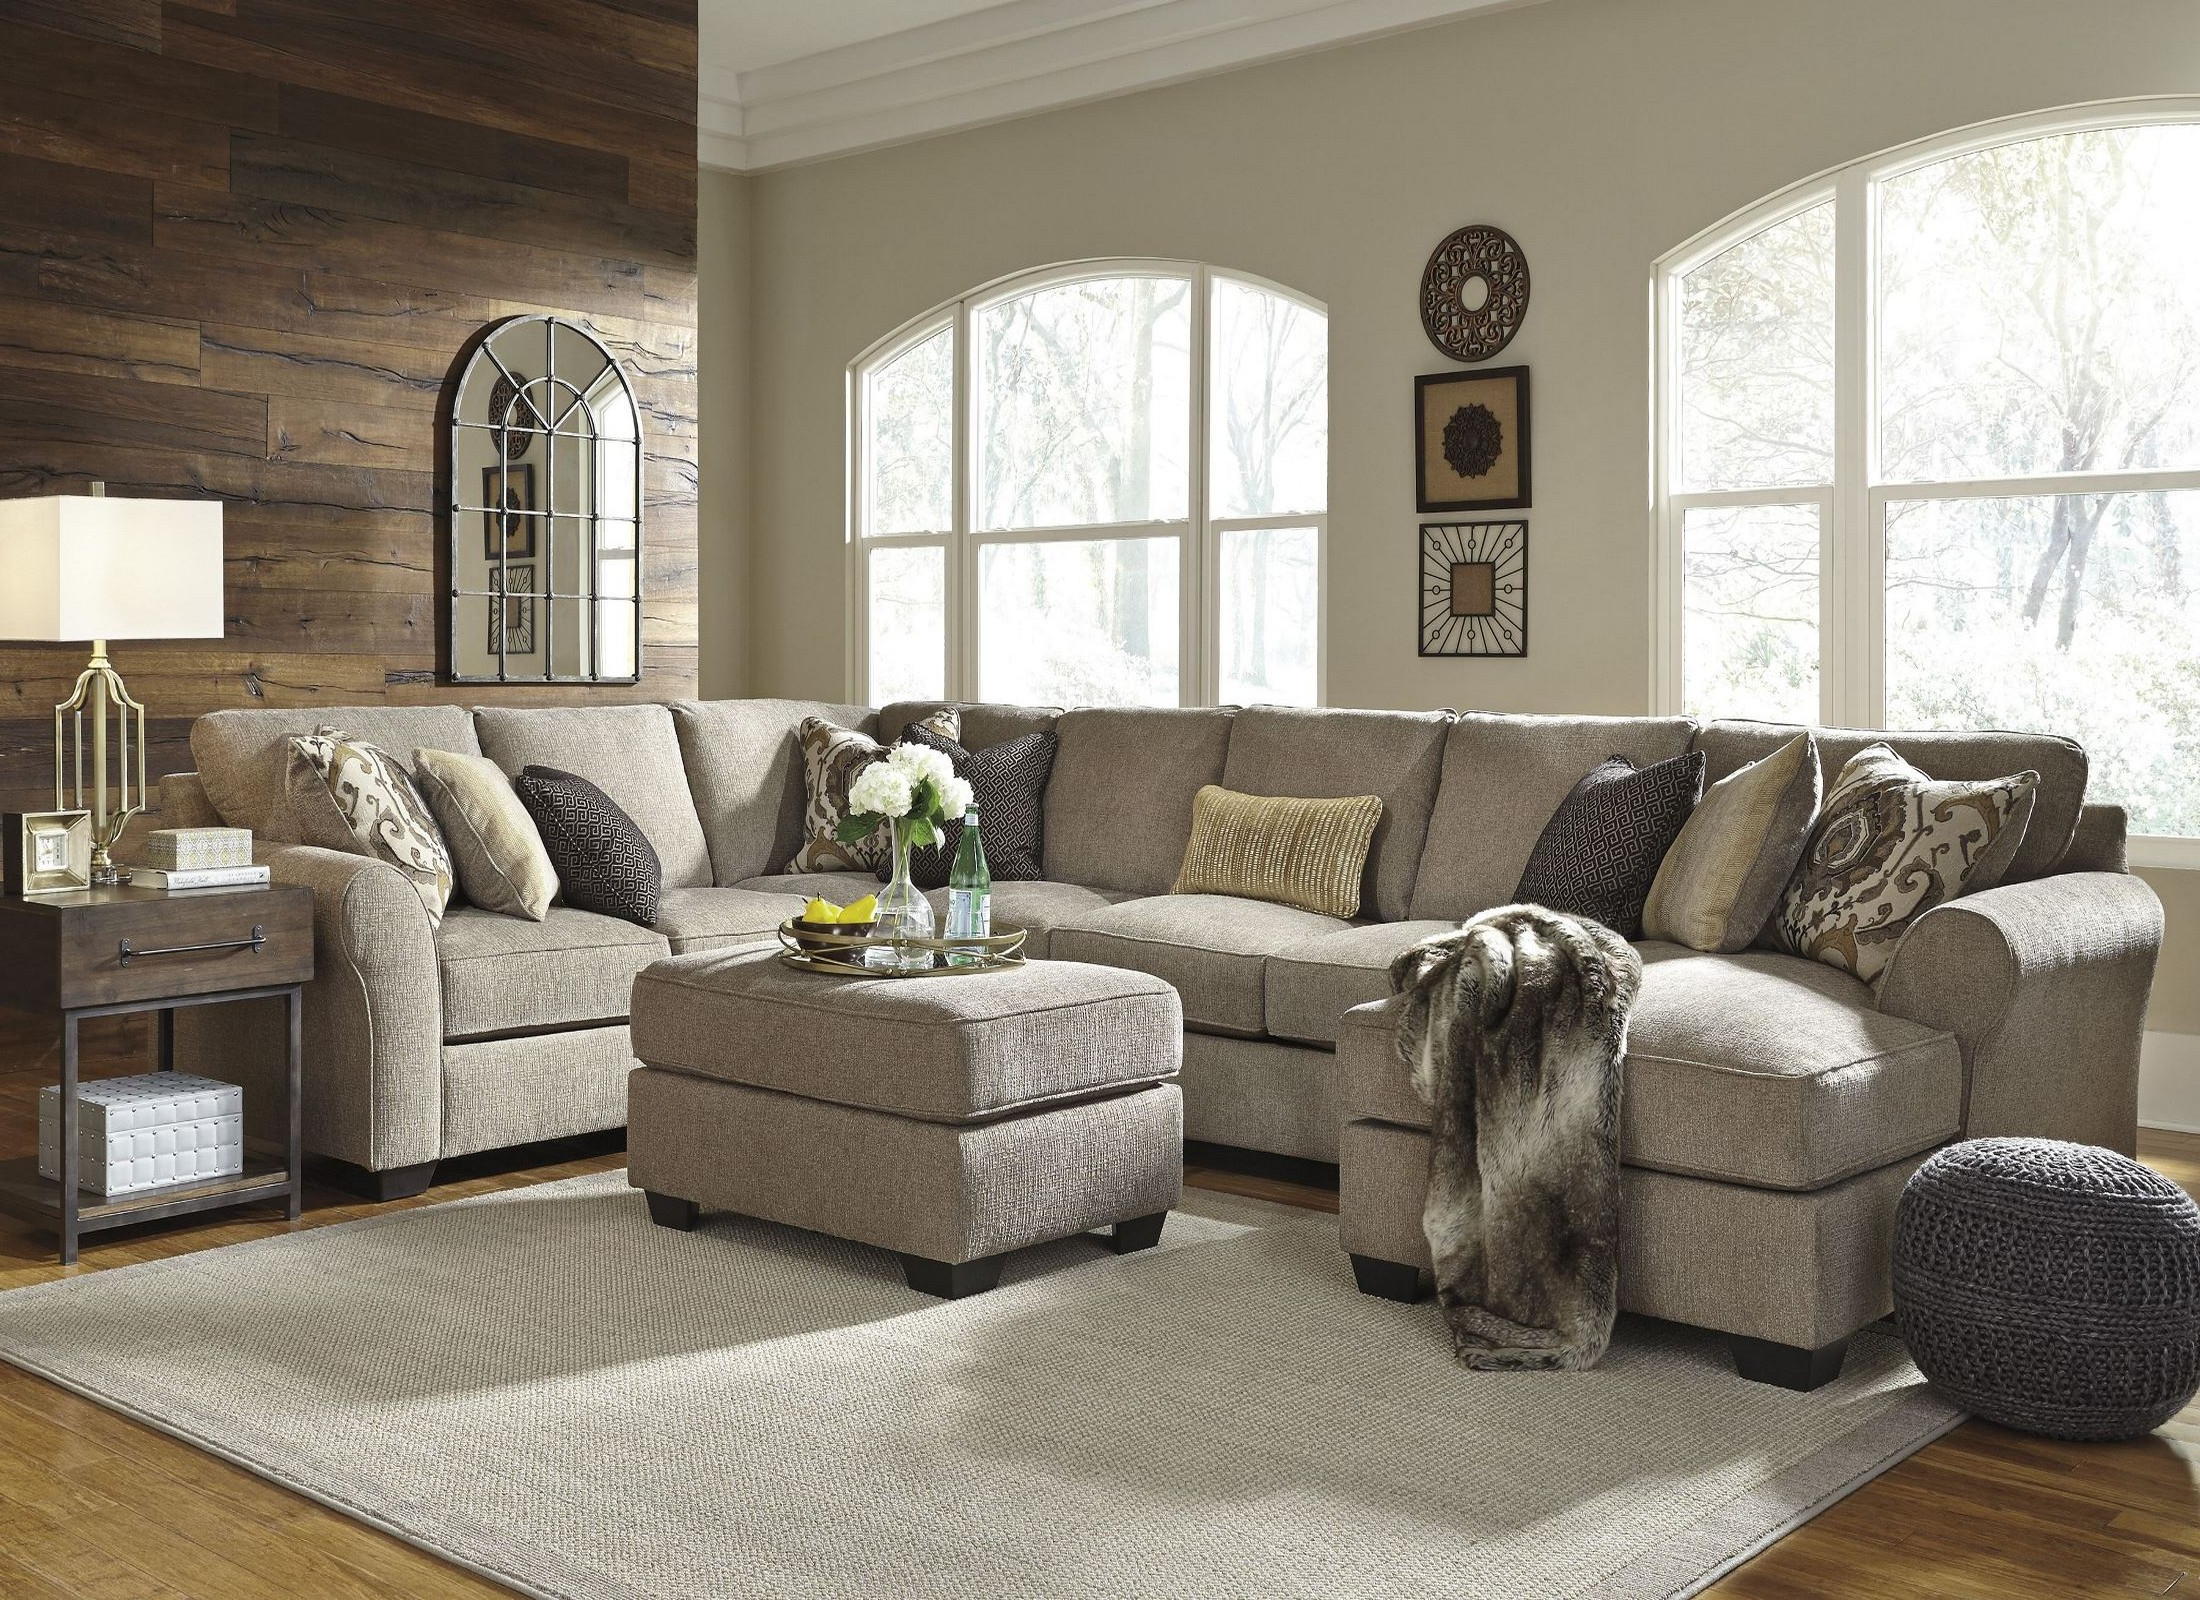 Harper Foam 3 Piece Sectionals With Raf Chaise Pertaining To Most Popular Pantomine Driftwood Laf Large Chaise Sectional From Ashley (View 9 of 20)